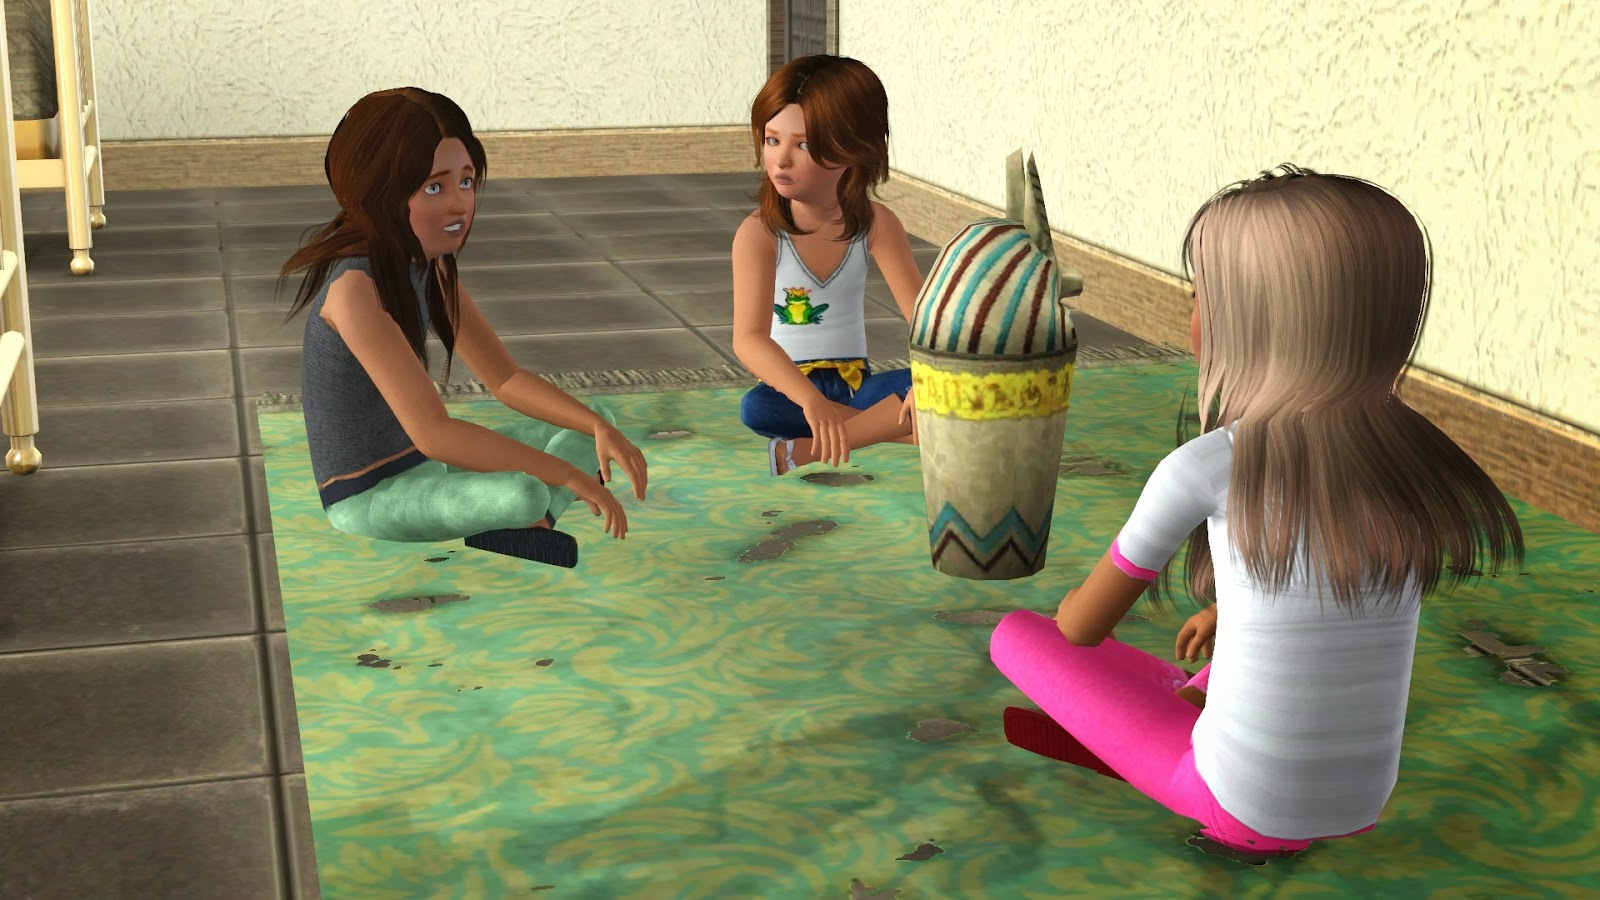 online meeting friends games There is your everyday hangout where you can have fun with your friends and meet new ones -- all in a lush 3d environment that's yours to explore sign up today.